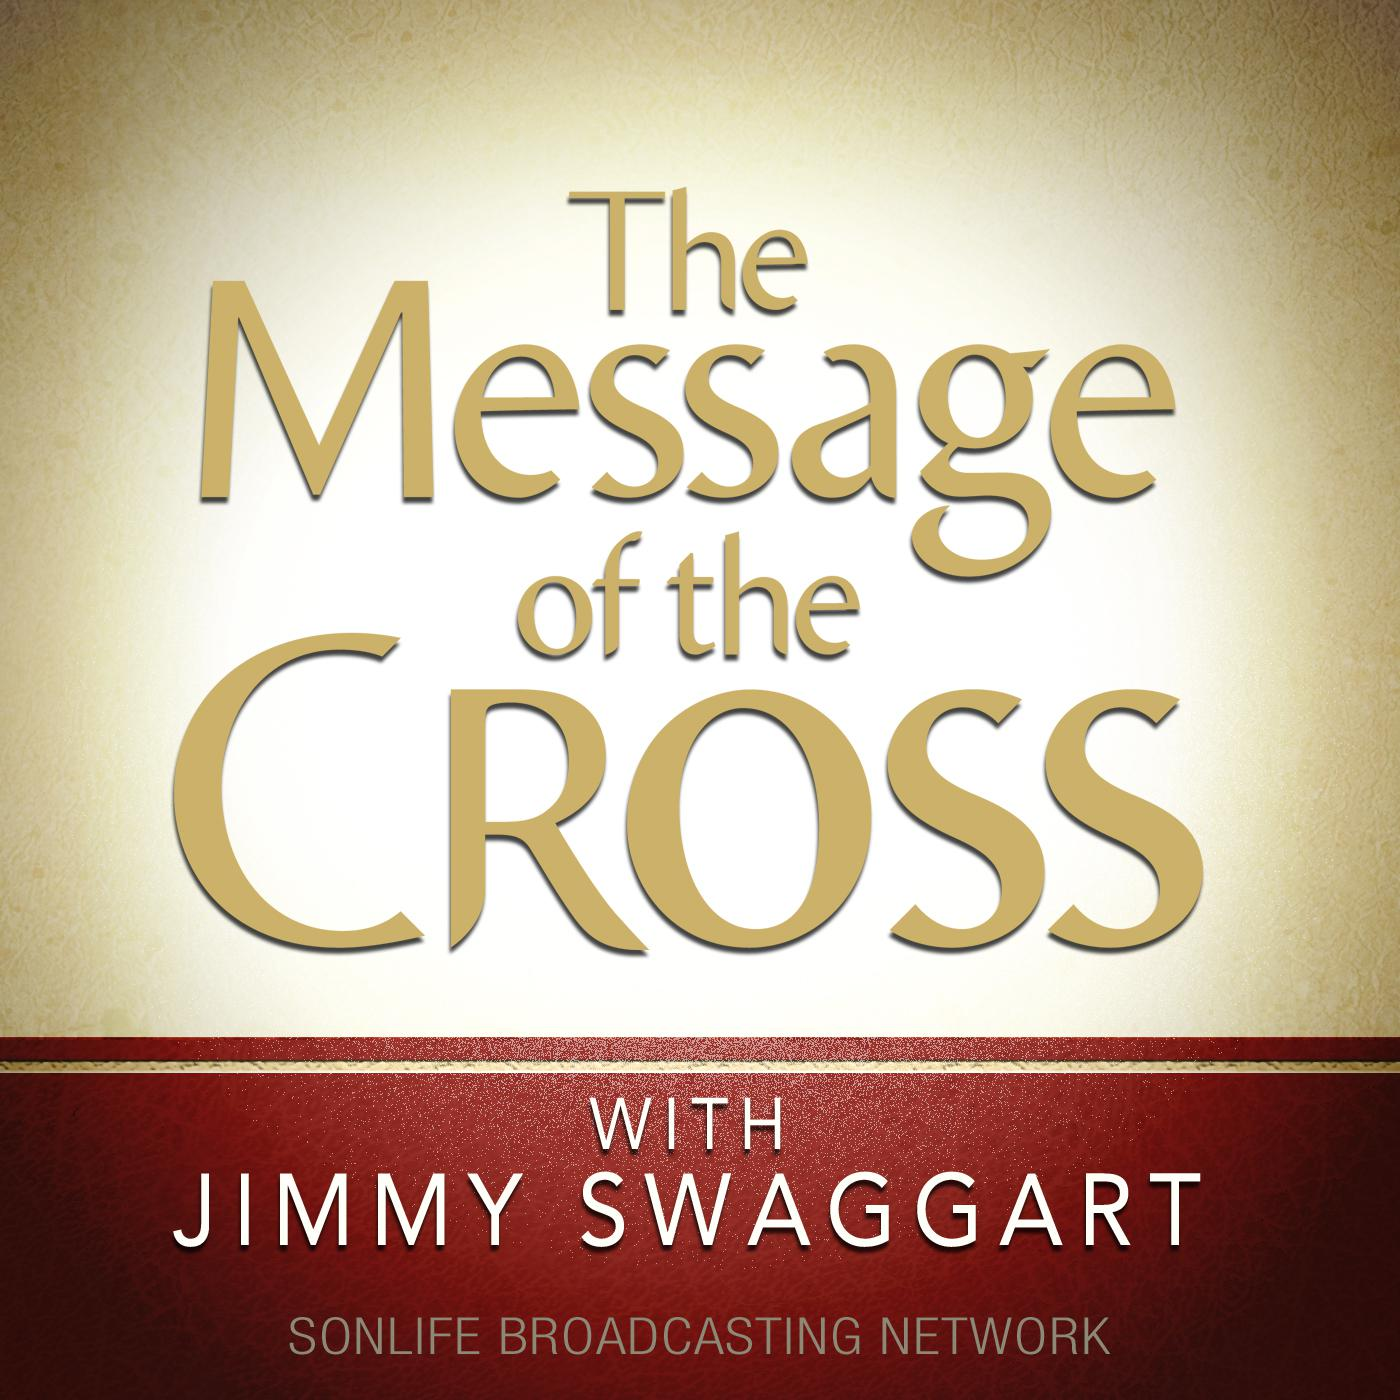 The Message of the Cross (podcast) - Jimmy Swaggart